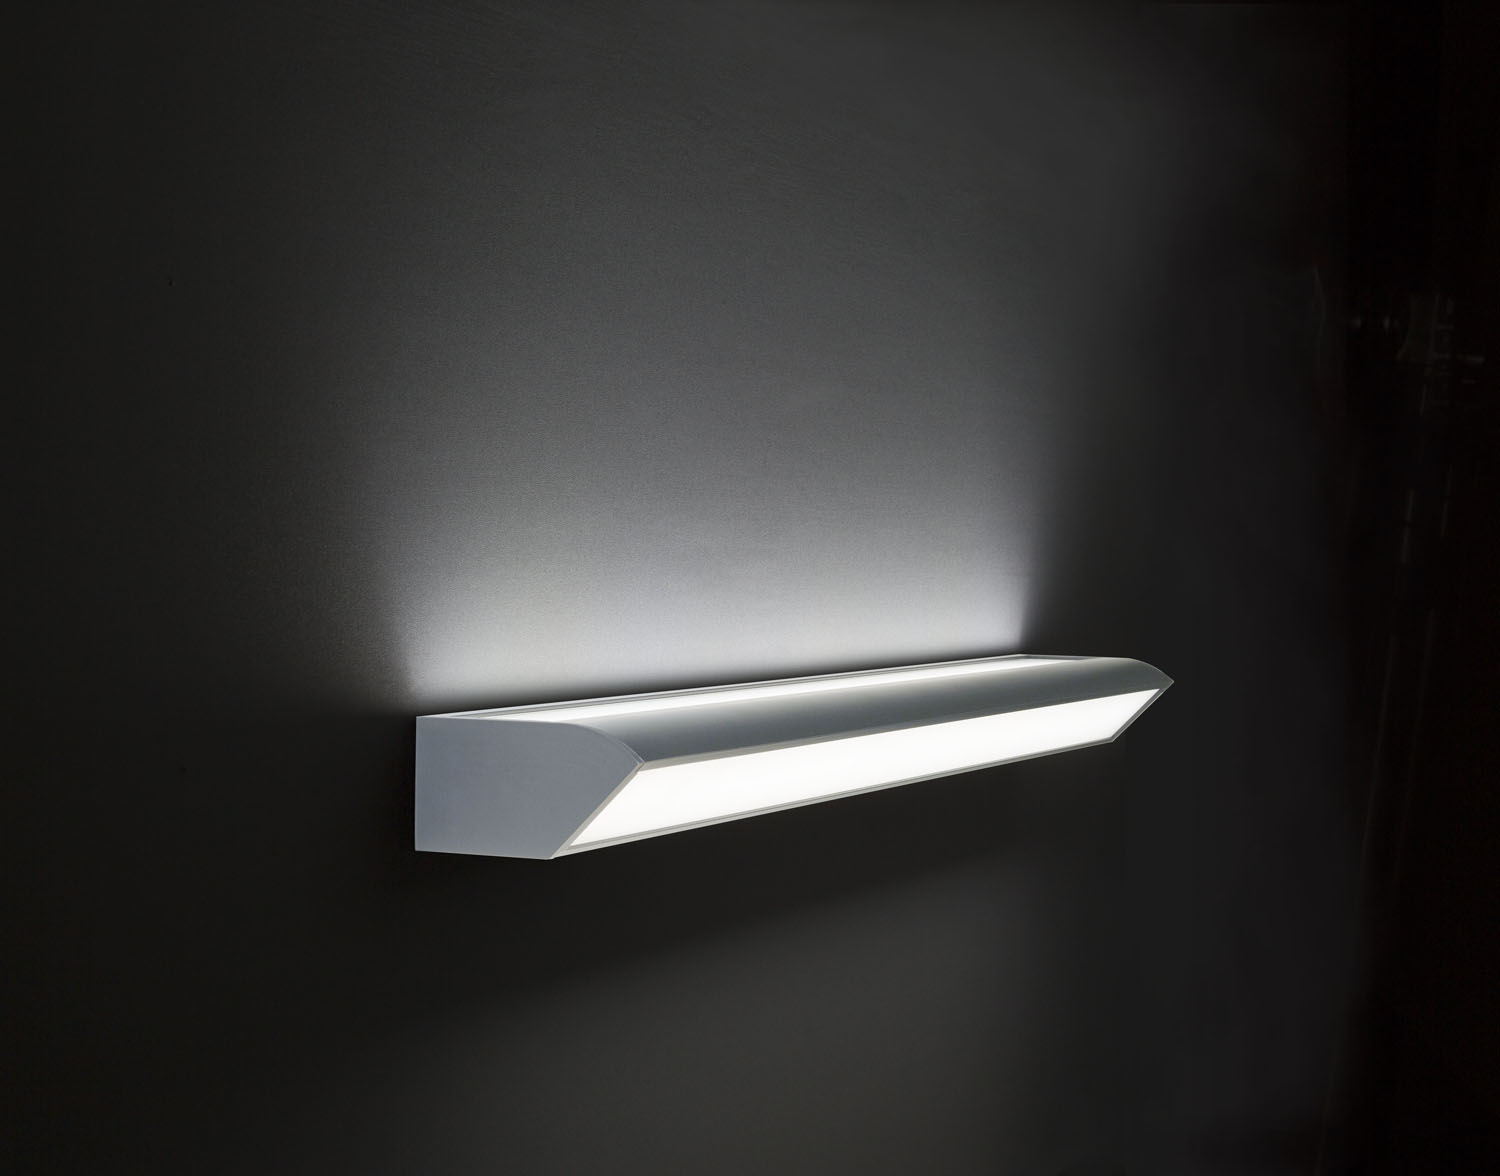 LED-121-WALL only down light,  modern design, for hospital and architectural use.High lumen, strobeless,glare free